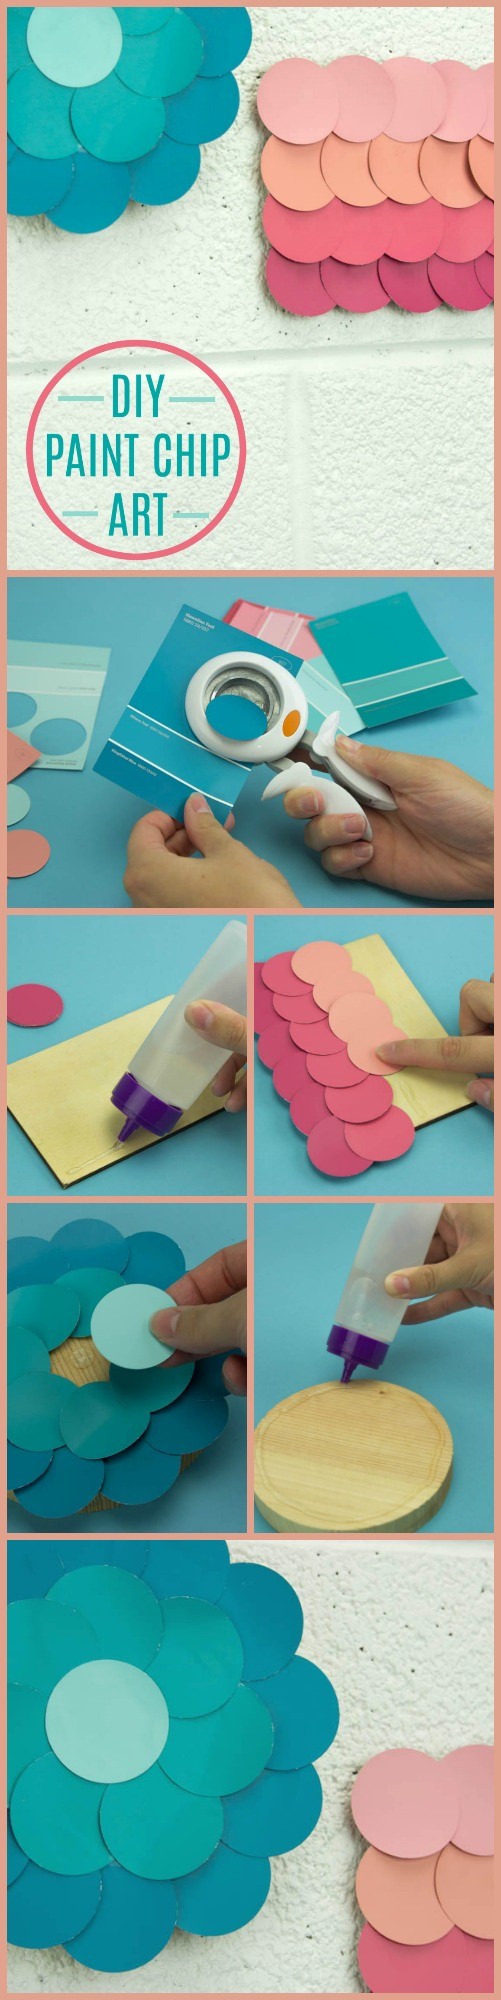 diy paint chip art, diy paint chip ides, paint chip craft, paint chip craft ideas, diy paint chip craft ideas